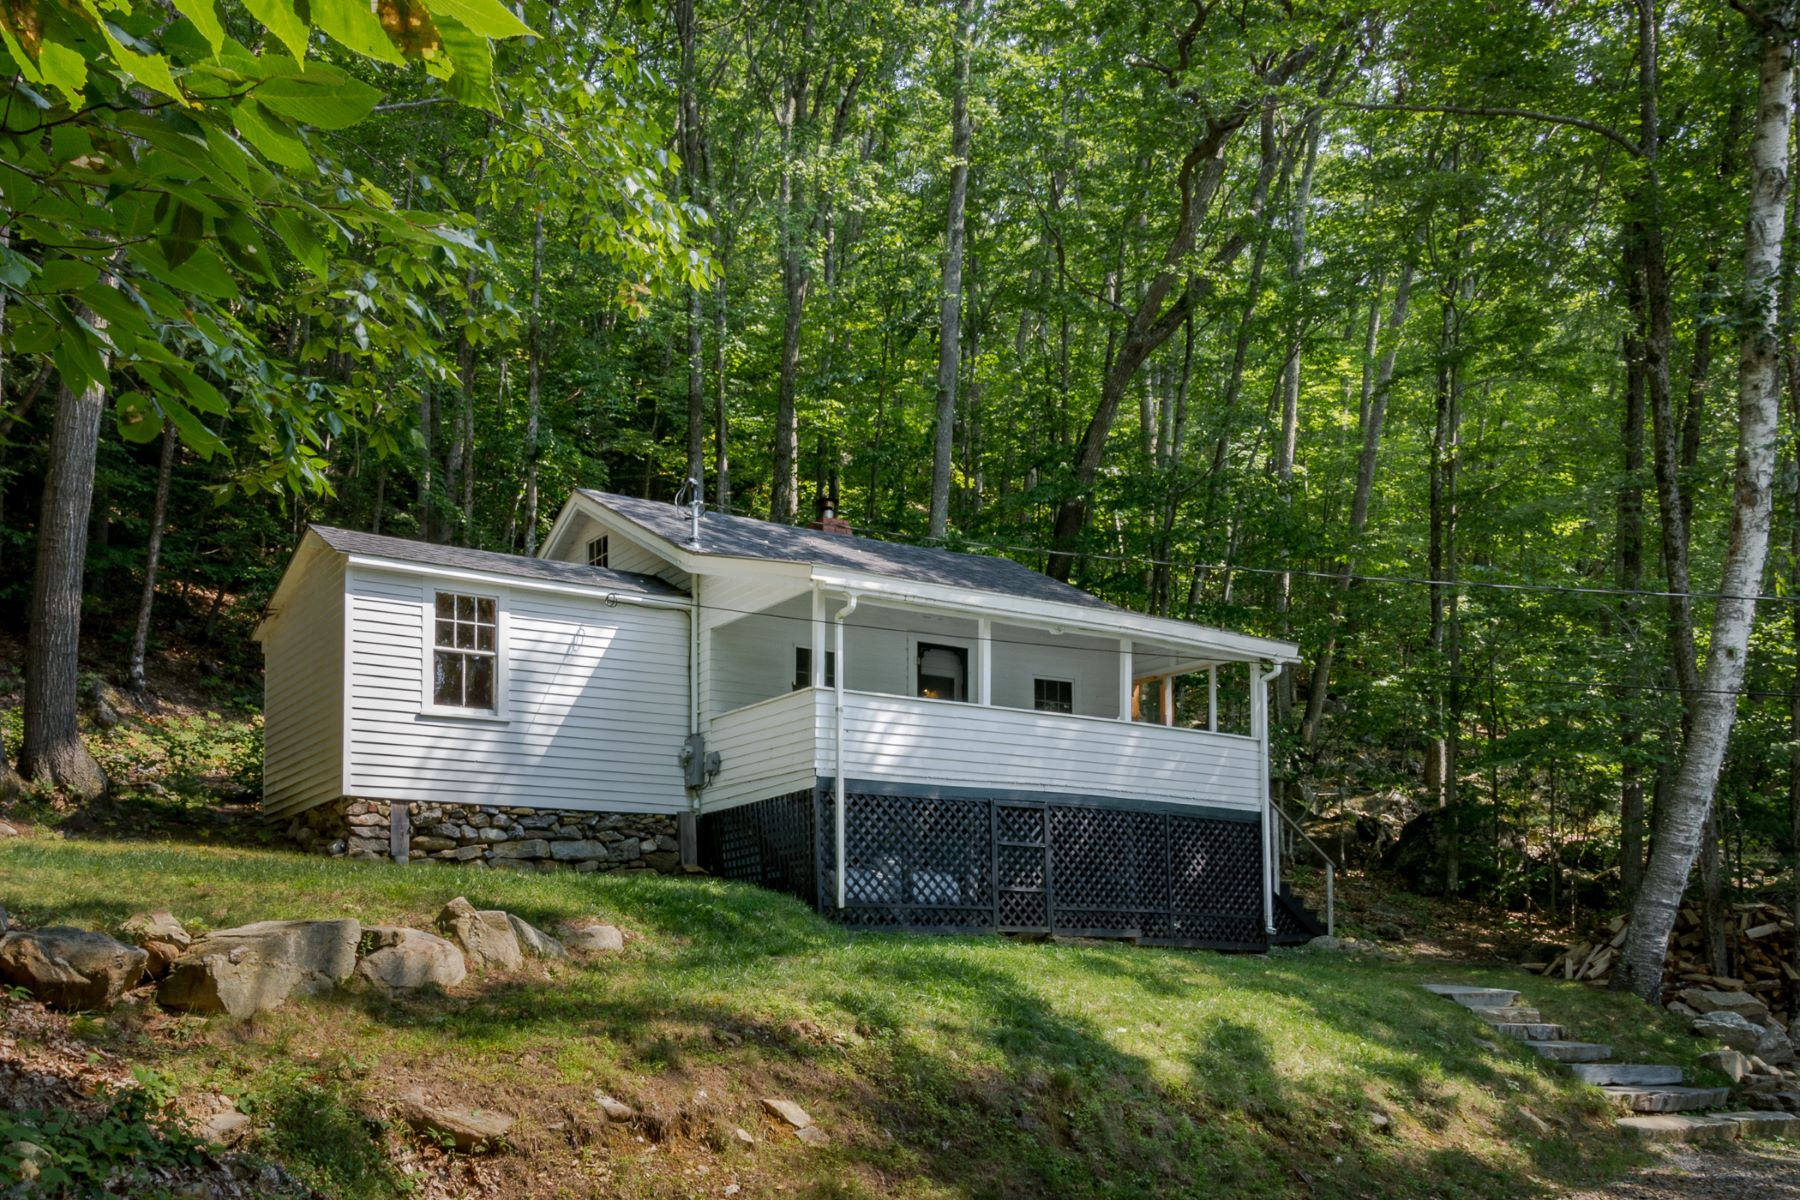 Single Family Home for Sale at 391 Hosmer Pond Road 391 Hosmer Pond Road Camden, Maine 04843 United States